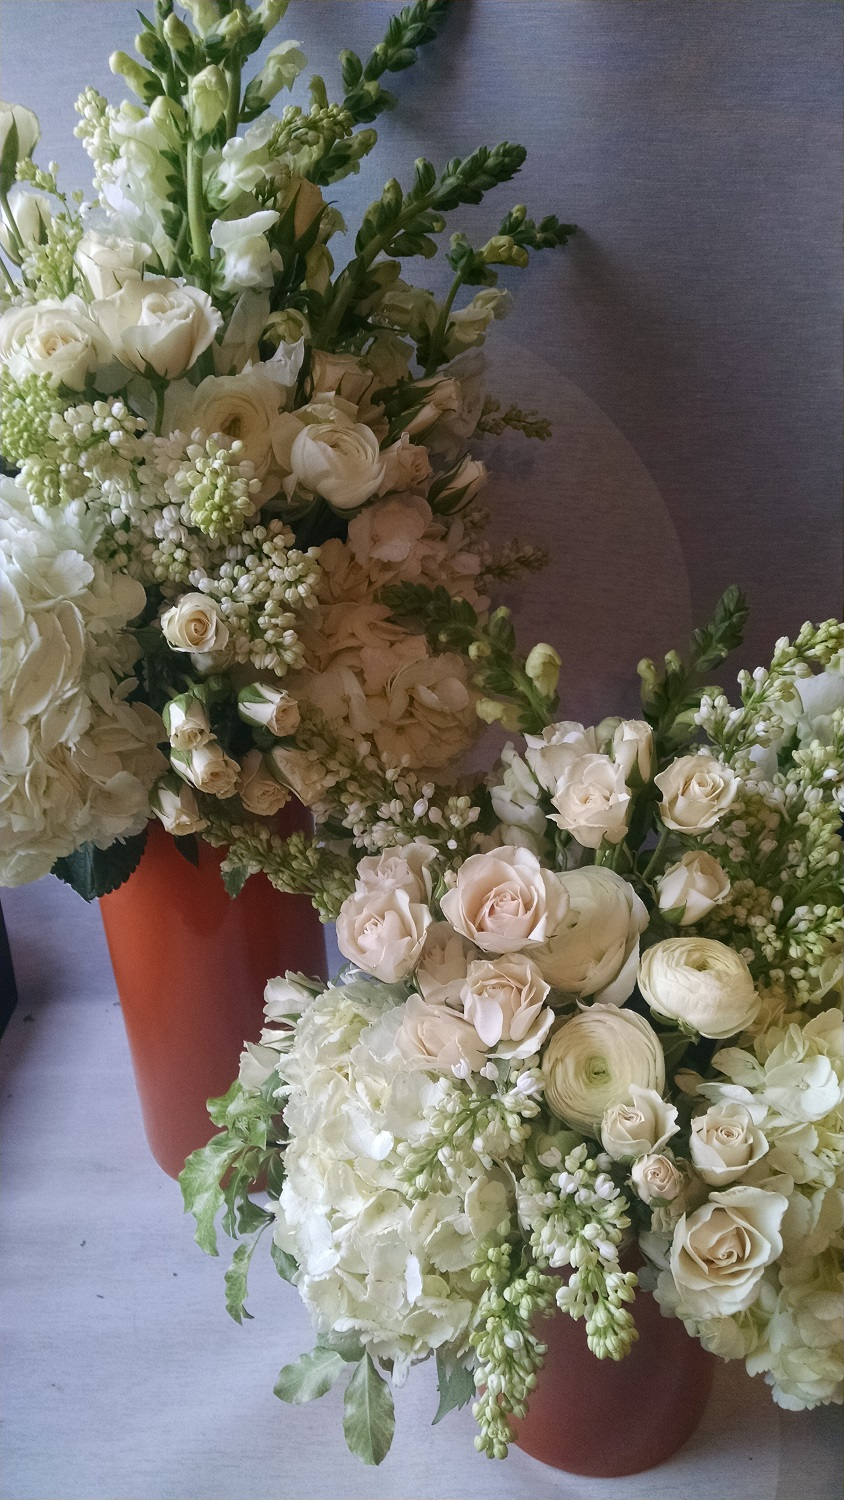 Winter Wedding Flowers White Ranunculus White Hydrangea Winter Weddings Wedding Bouquets White Flowers Winter Flowers Minneapolis Shinola White Arrangement Lilac Ranunculus Hydrangea Winter Luna Vinca